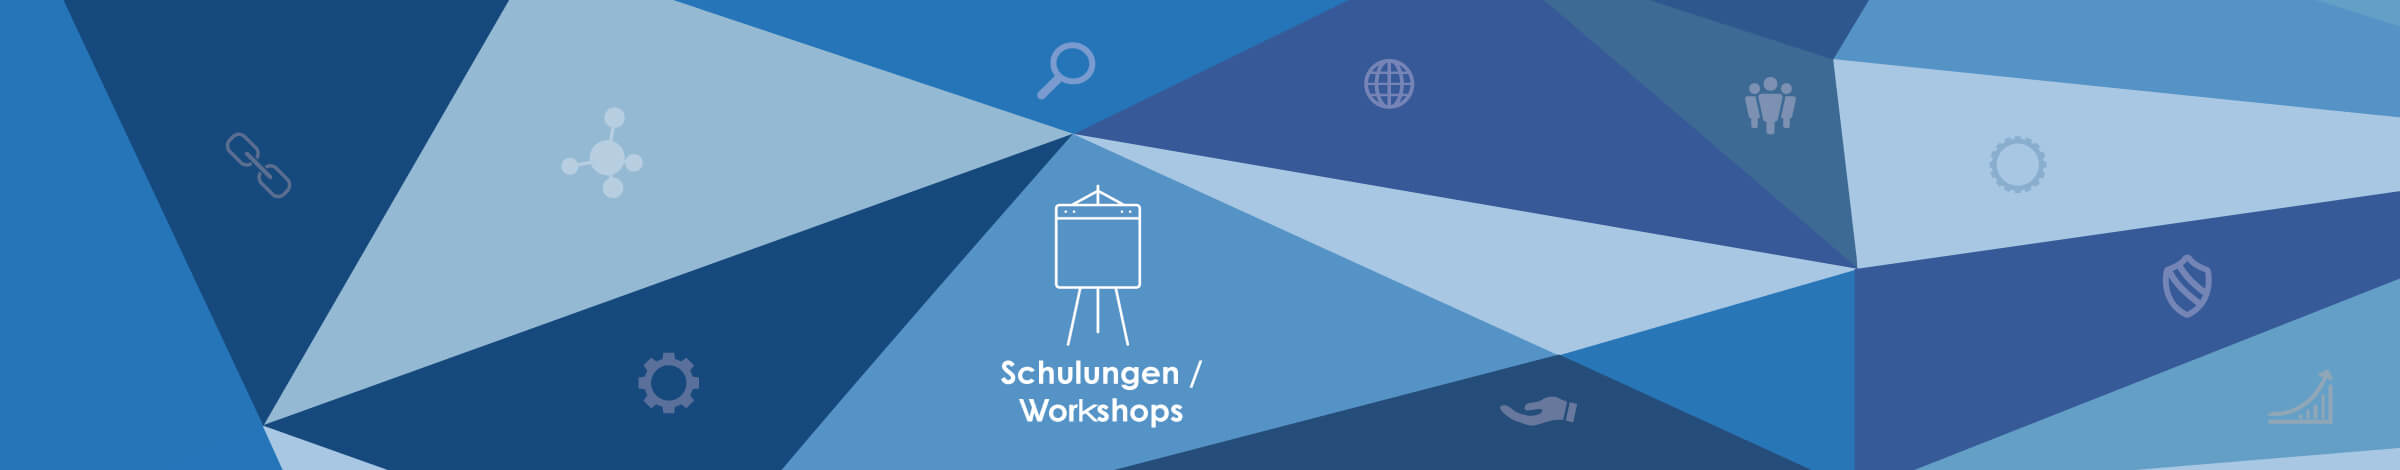 web_updates_kmu_wuk-ch_Schulungen-Workshops